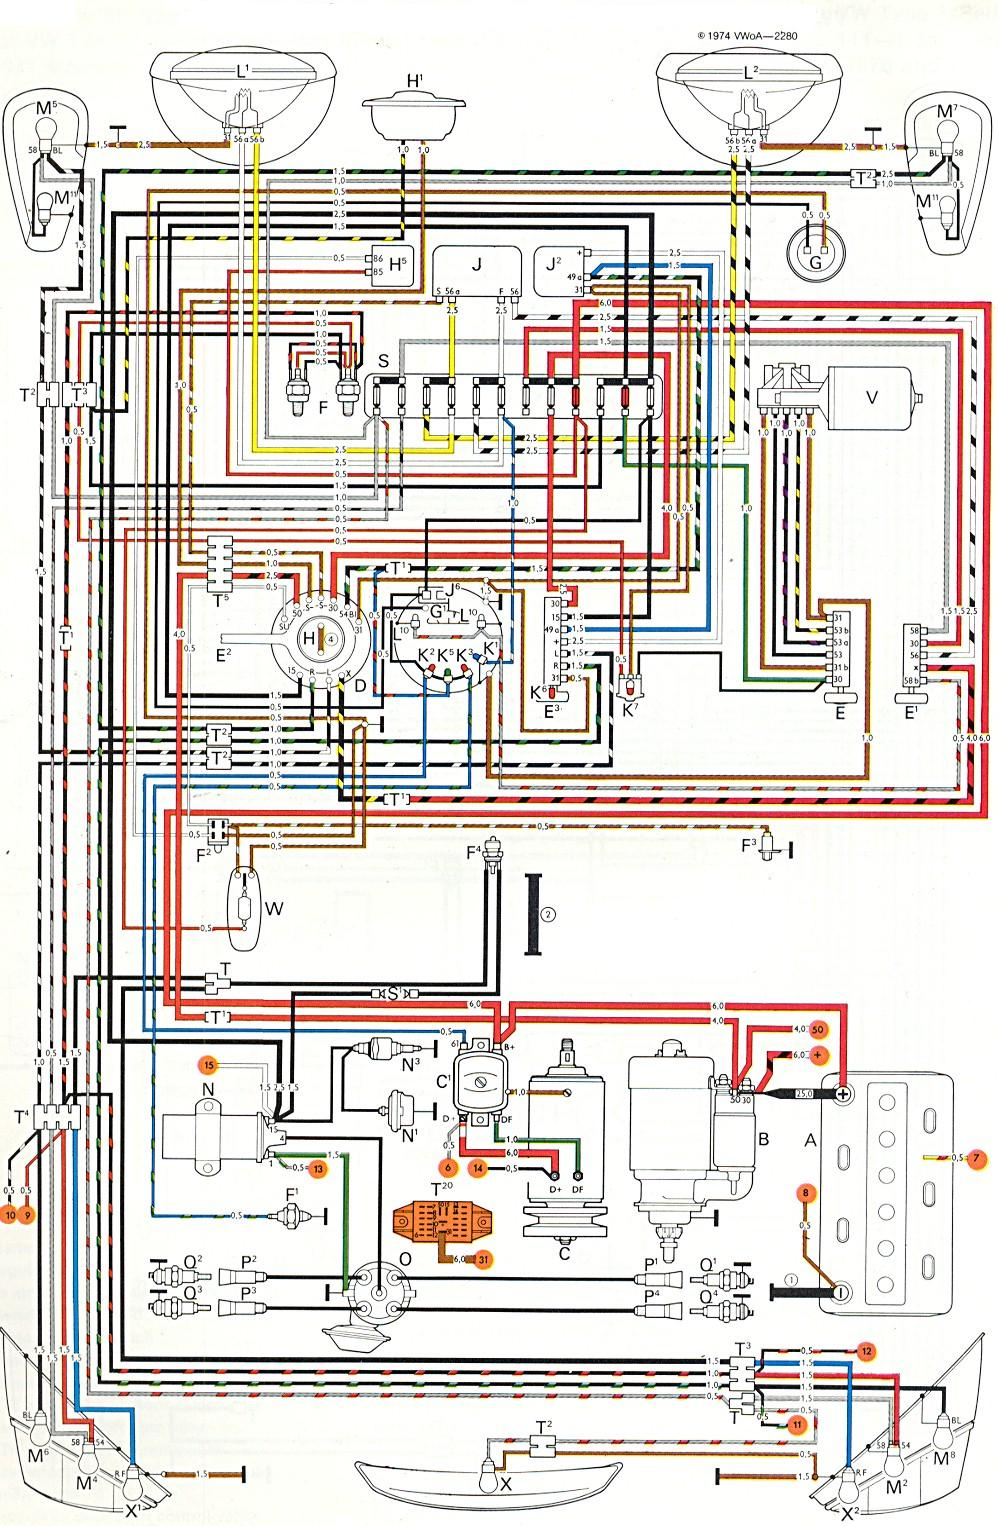 wiring diagram for 2002 volkswagen beetle wiring diagram origin 2004 vw beetle transmission wiring diagram 2000 [ 999 x 1526 Pixel ]